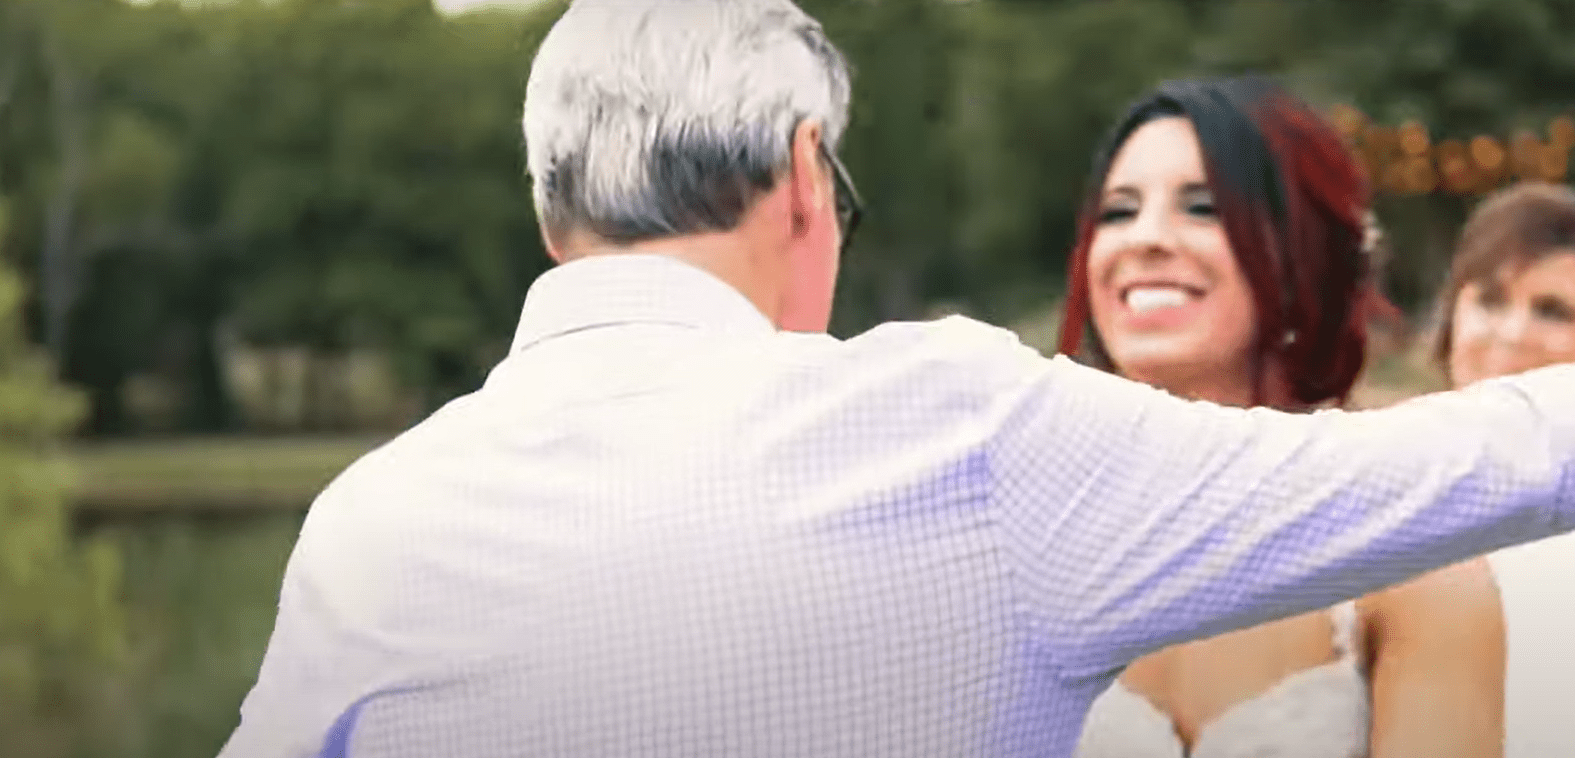 A father and daughter going in for a hug. | Source: youtube.com/Megan Roy